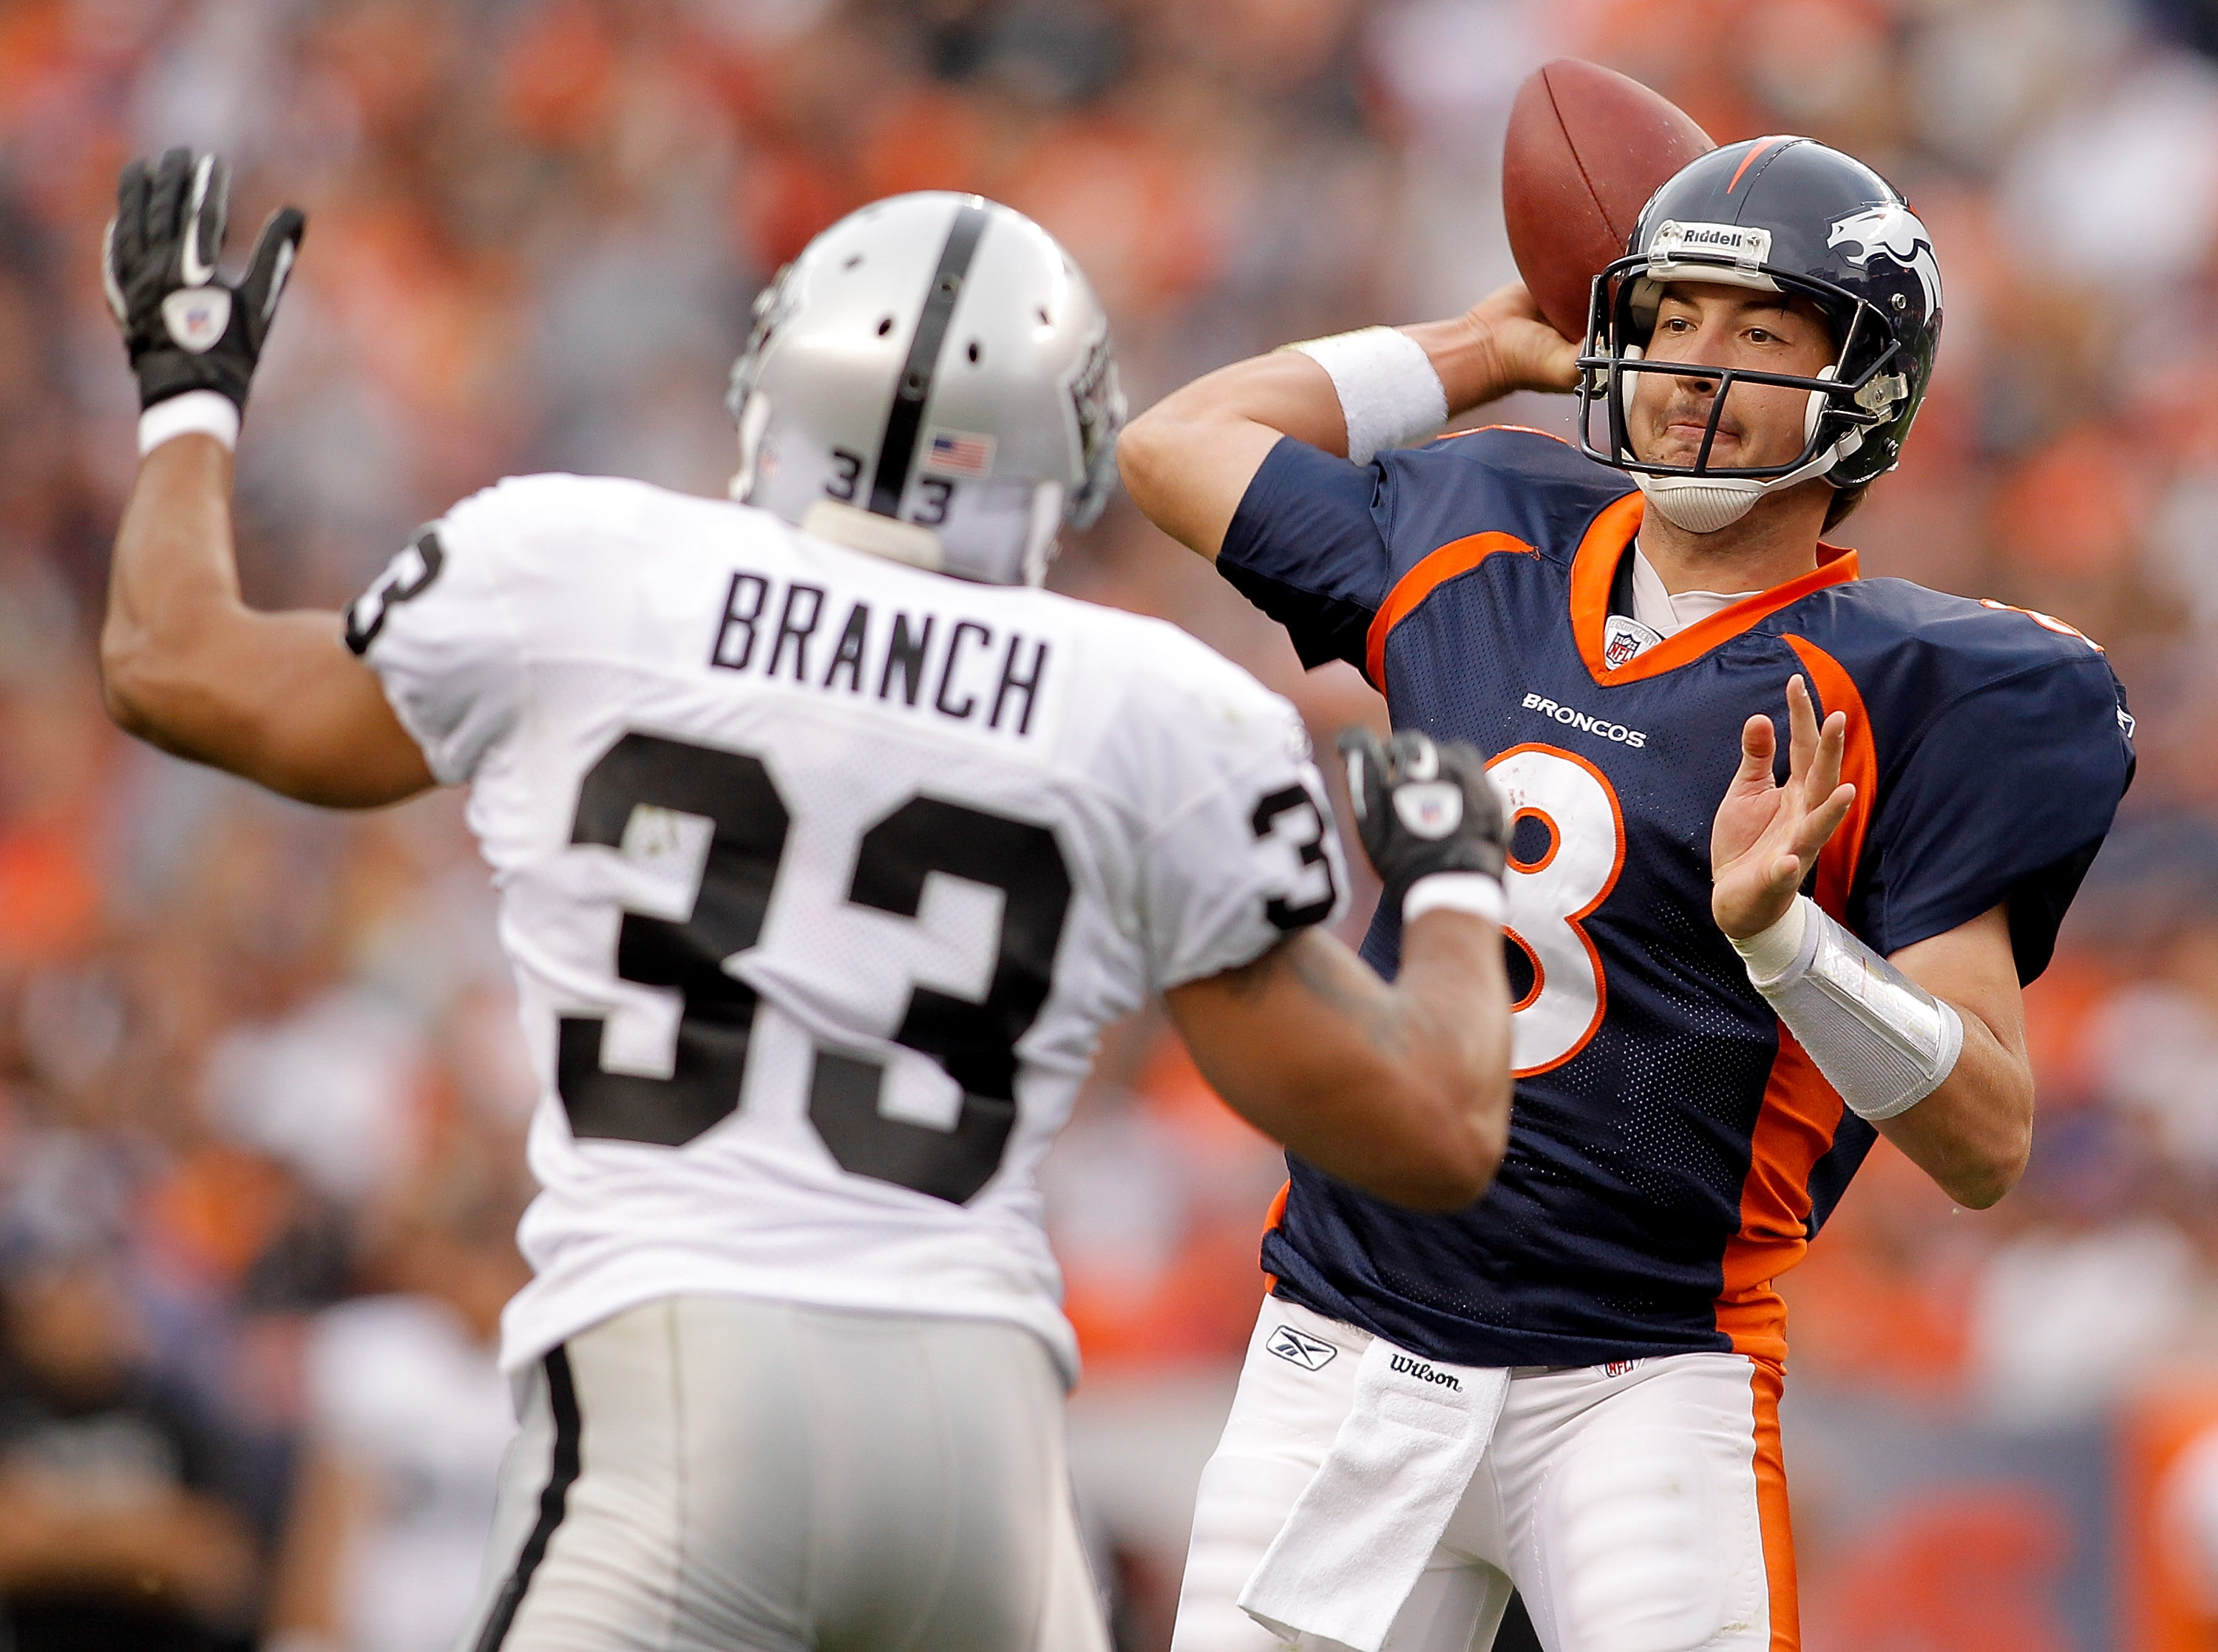 DENVER - OCTOBER 24:  Quarterback Kyle Orton #8 of the Denver Broncos makes a pass in front of safety Tyvon Branch #33 of the Oakland Raiders in the second quarter at INVESCO Field at Mile High on October 24, 2010 in Denver, Colorado. (Photo by Justin Edm